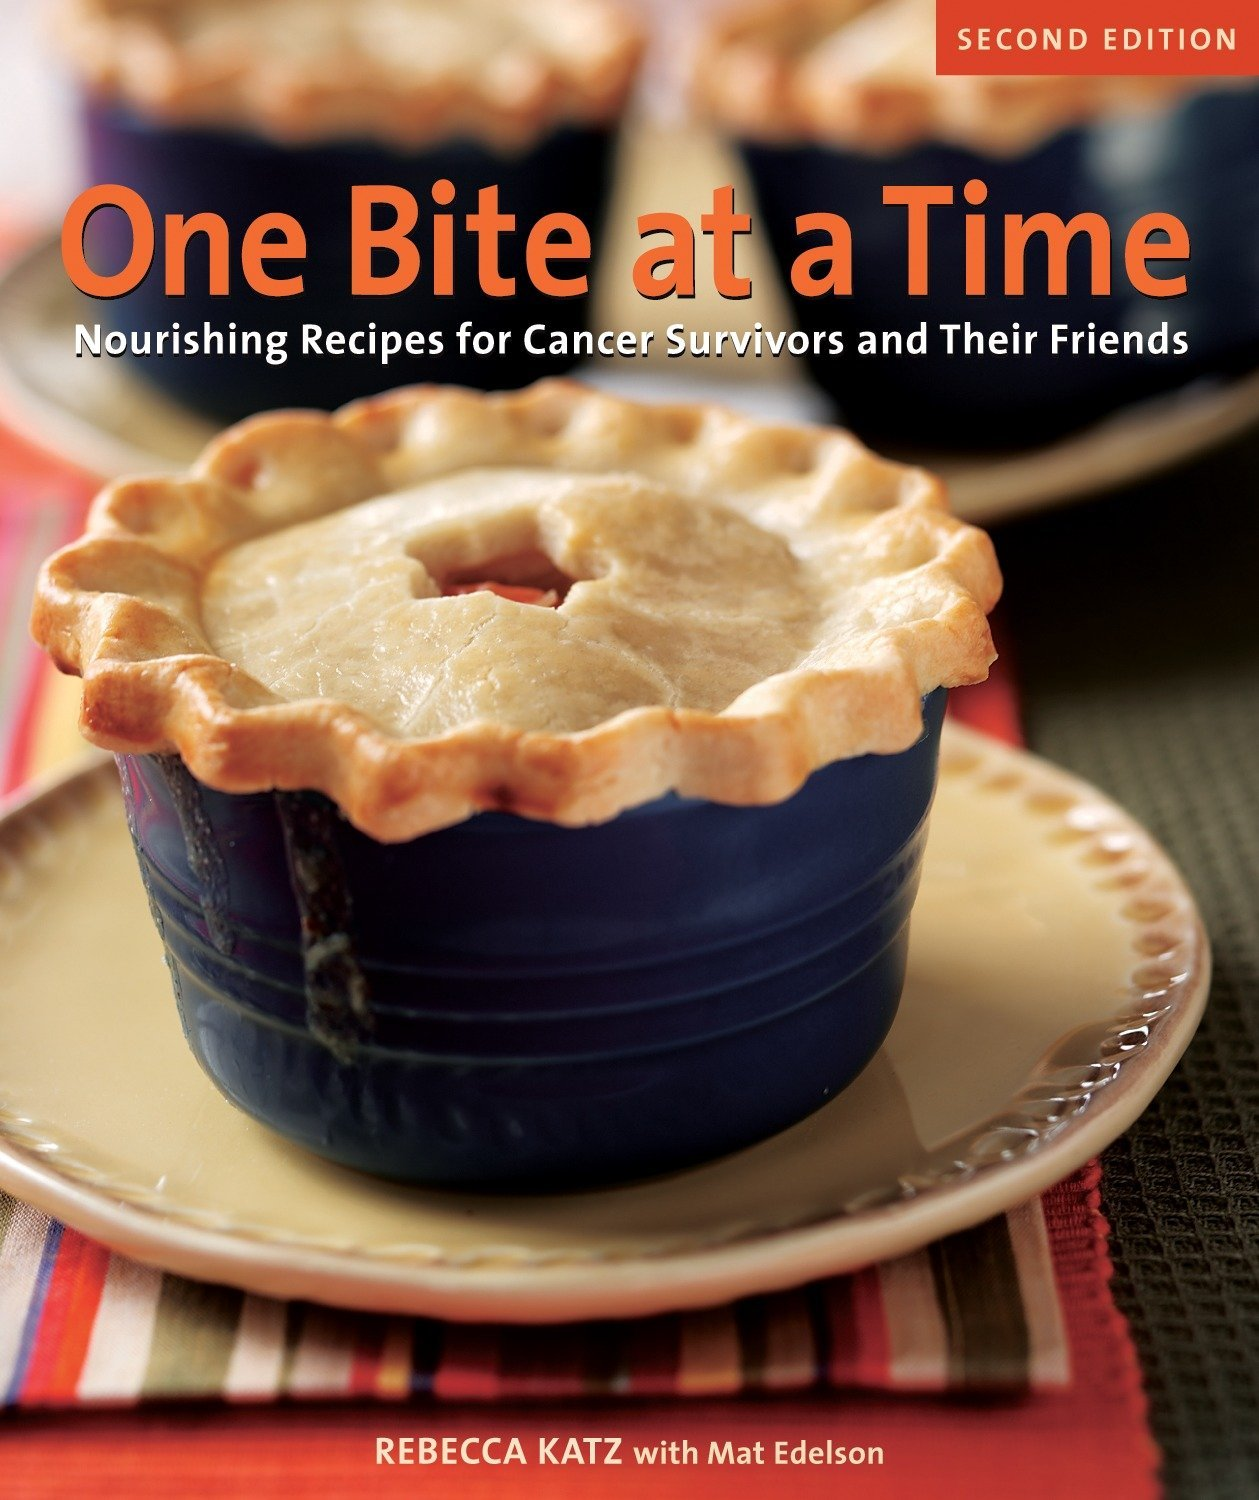 One Bite at a Time Cookbook for Cancer Patients